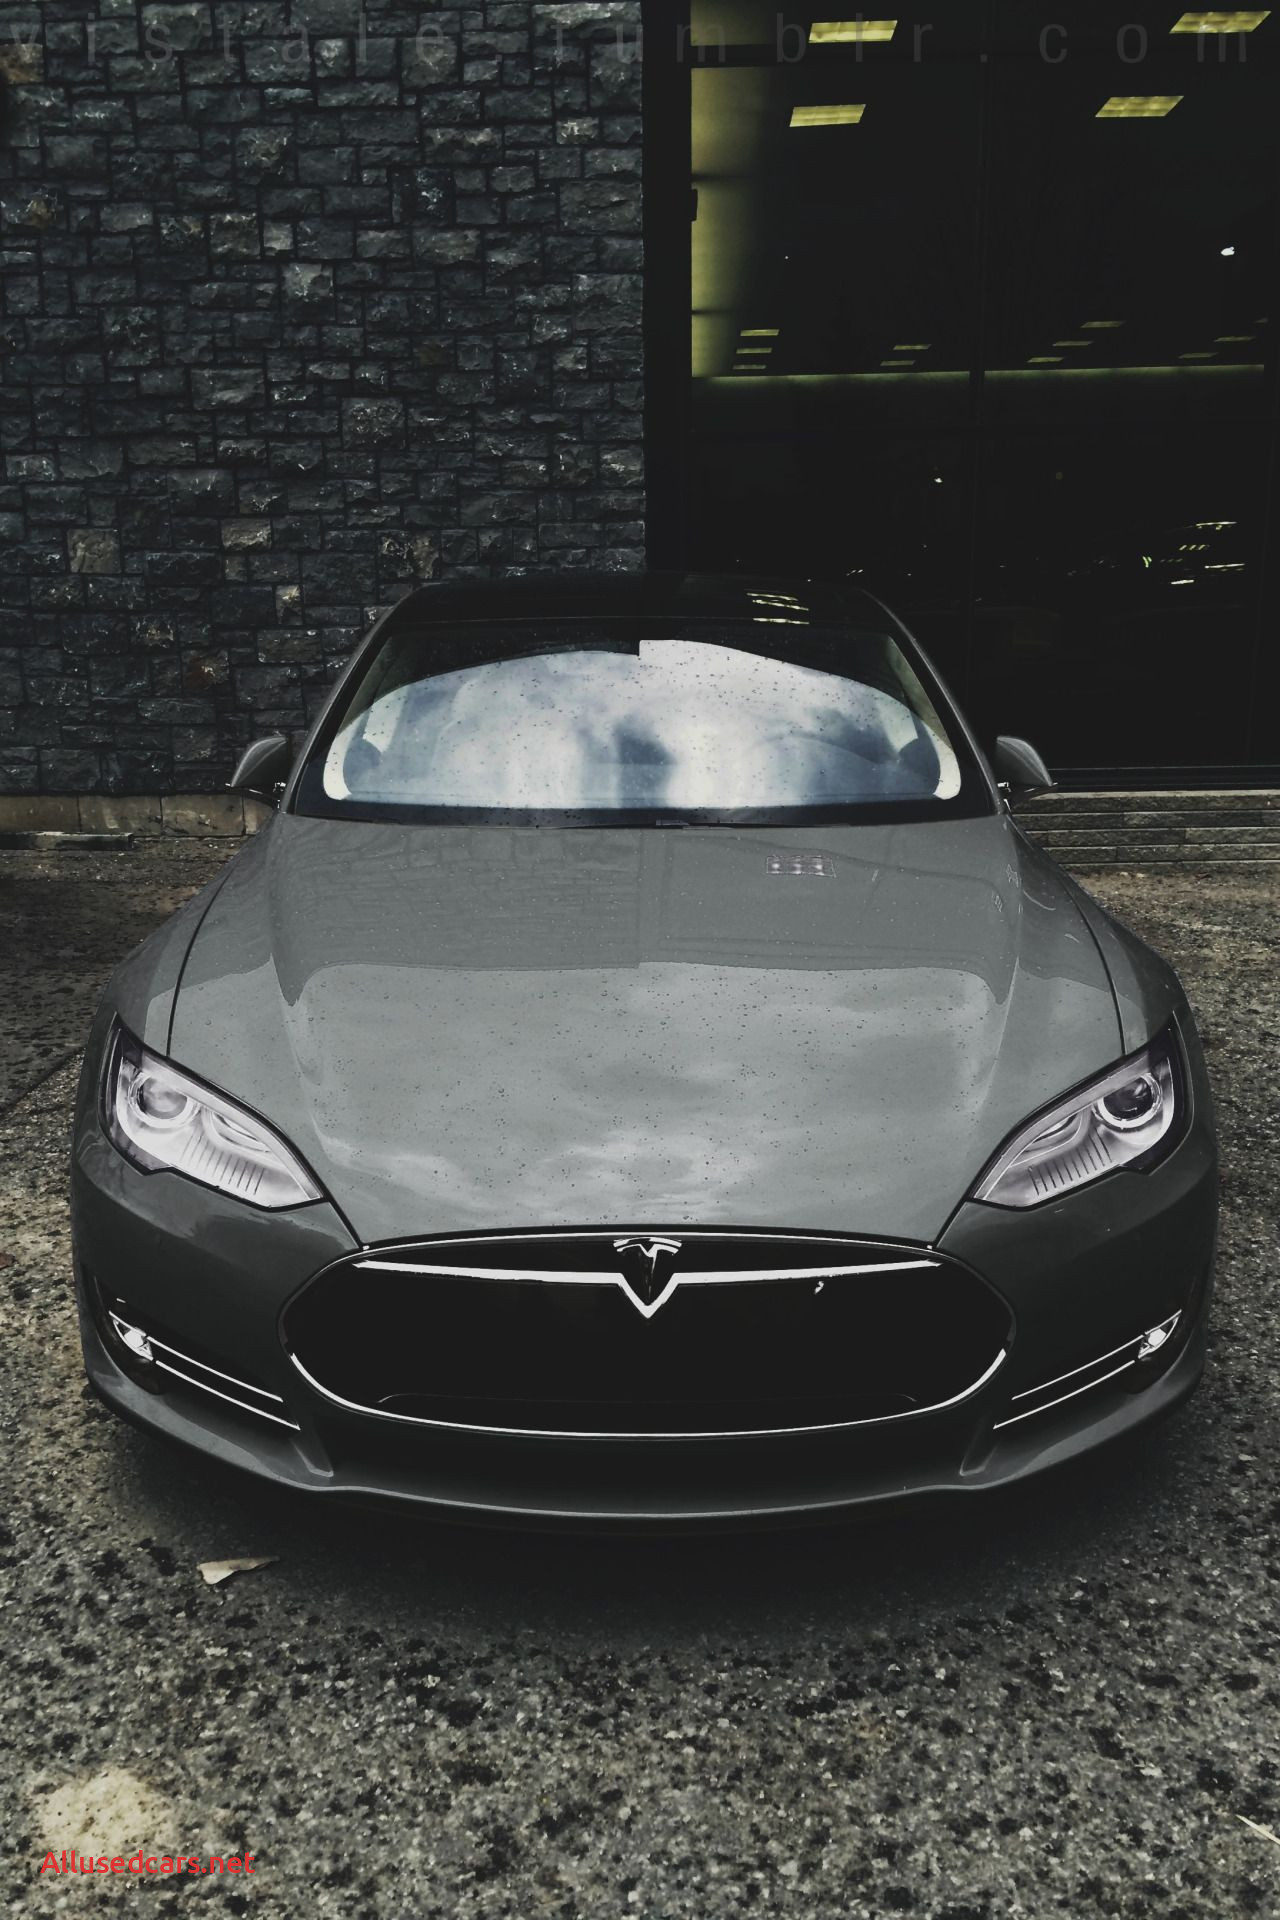 Awesome Tesla 6